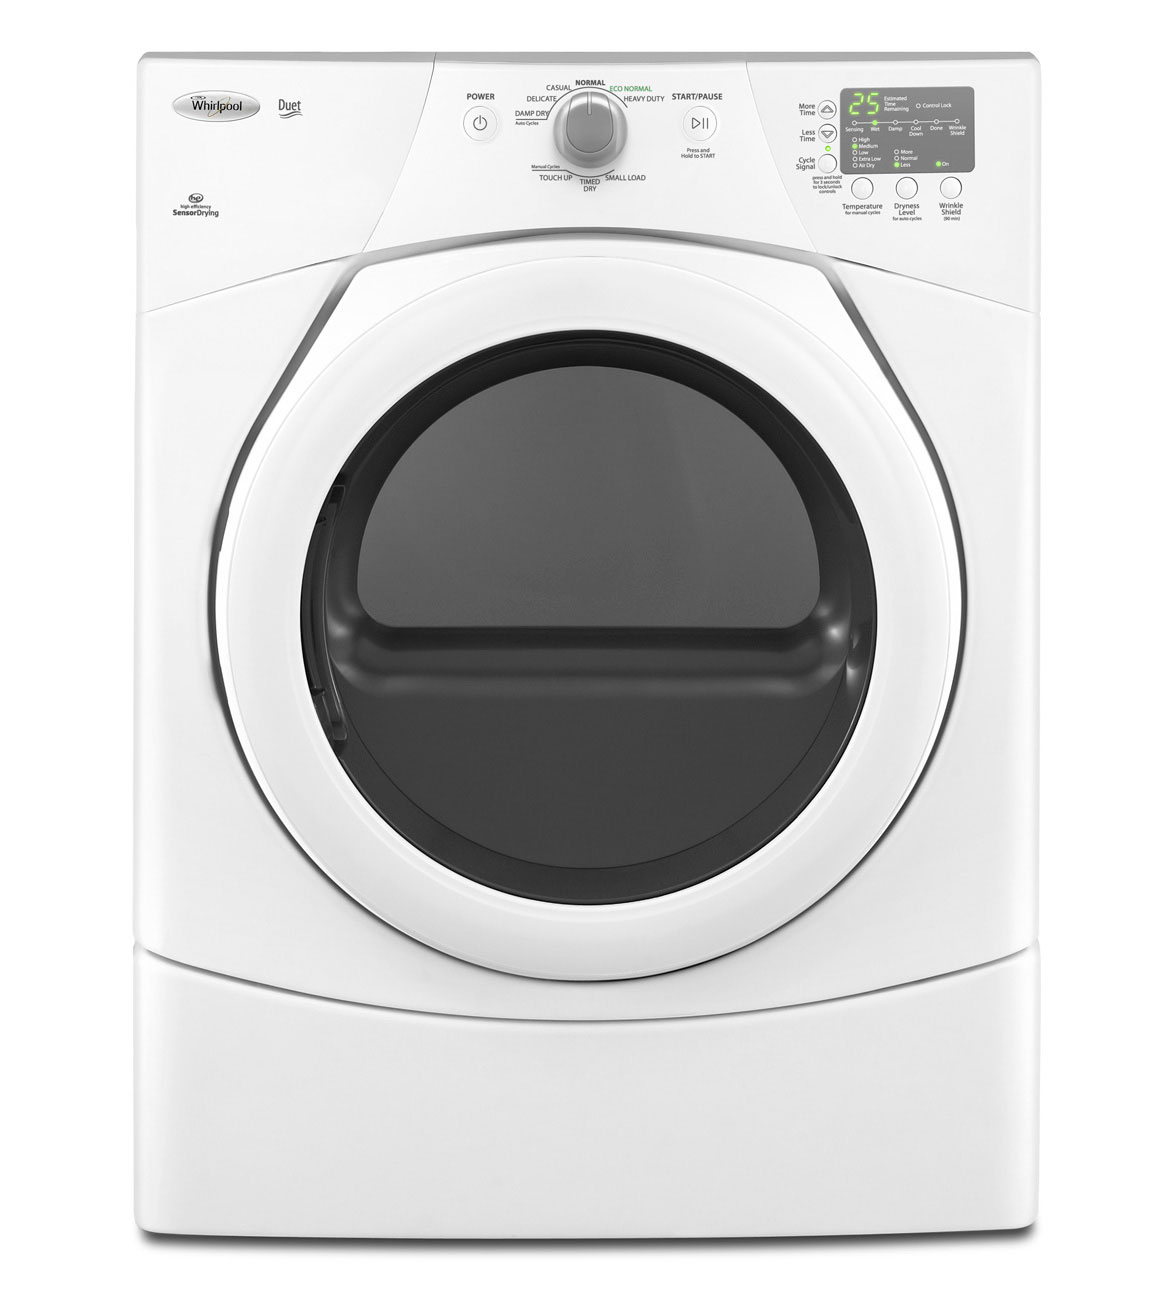 Wed9151yw whirlpool wed9151yw duet electric dryers white - Whirlpool duet washer and dryer ...